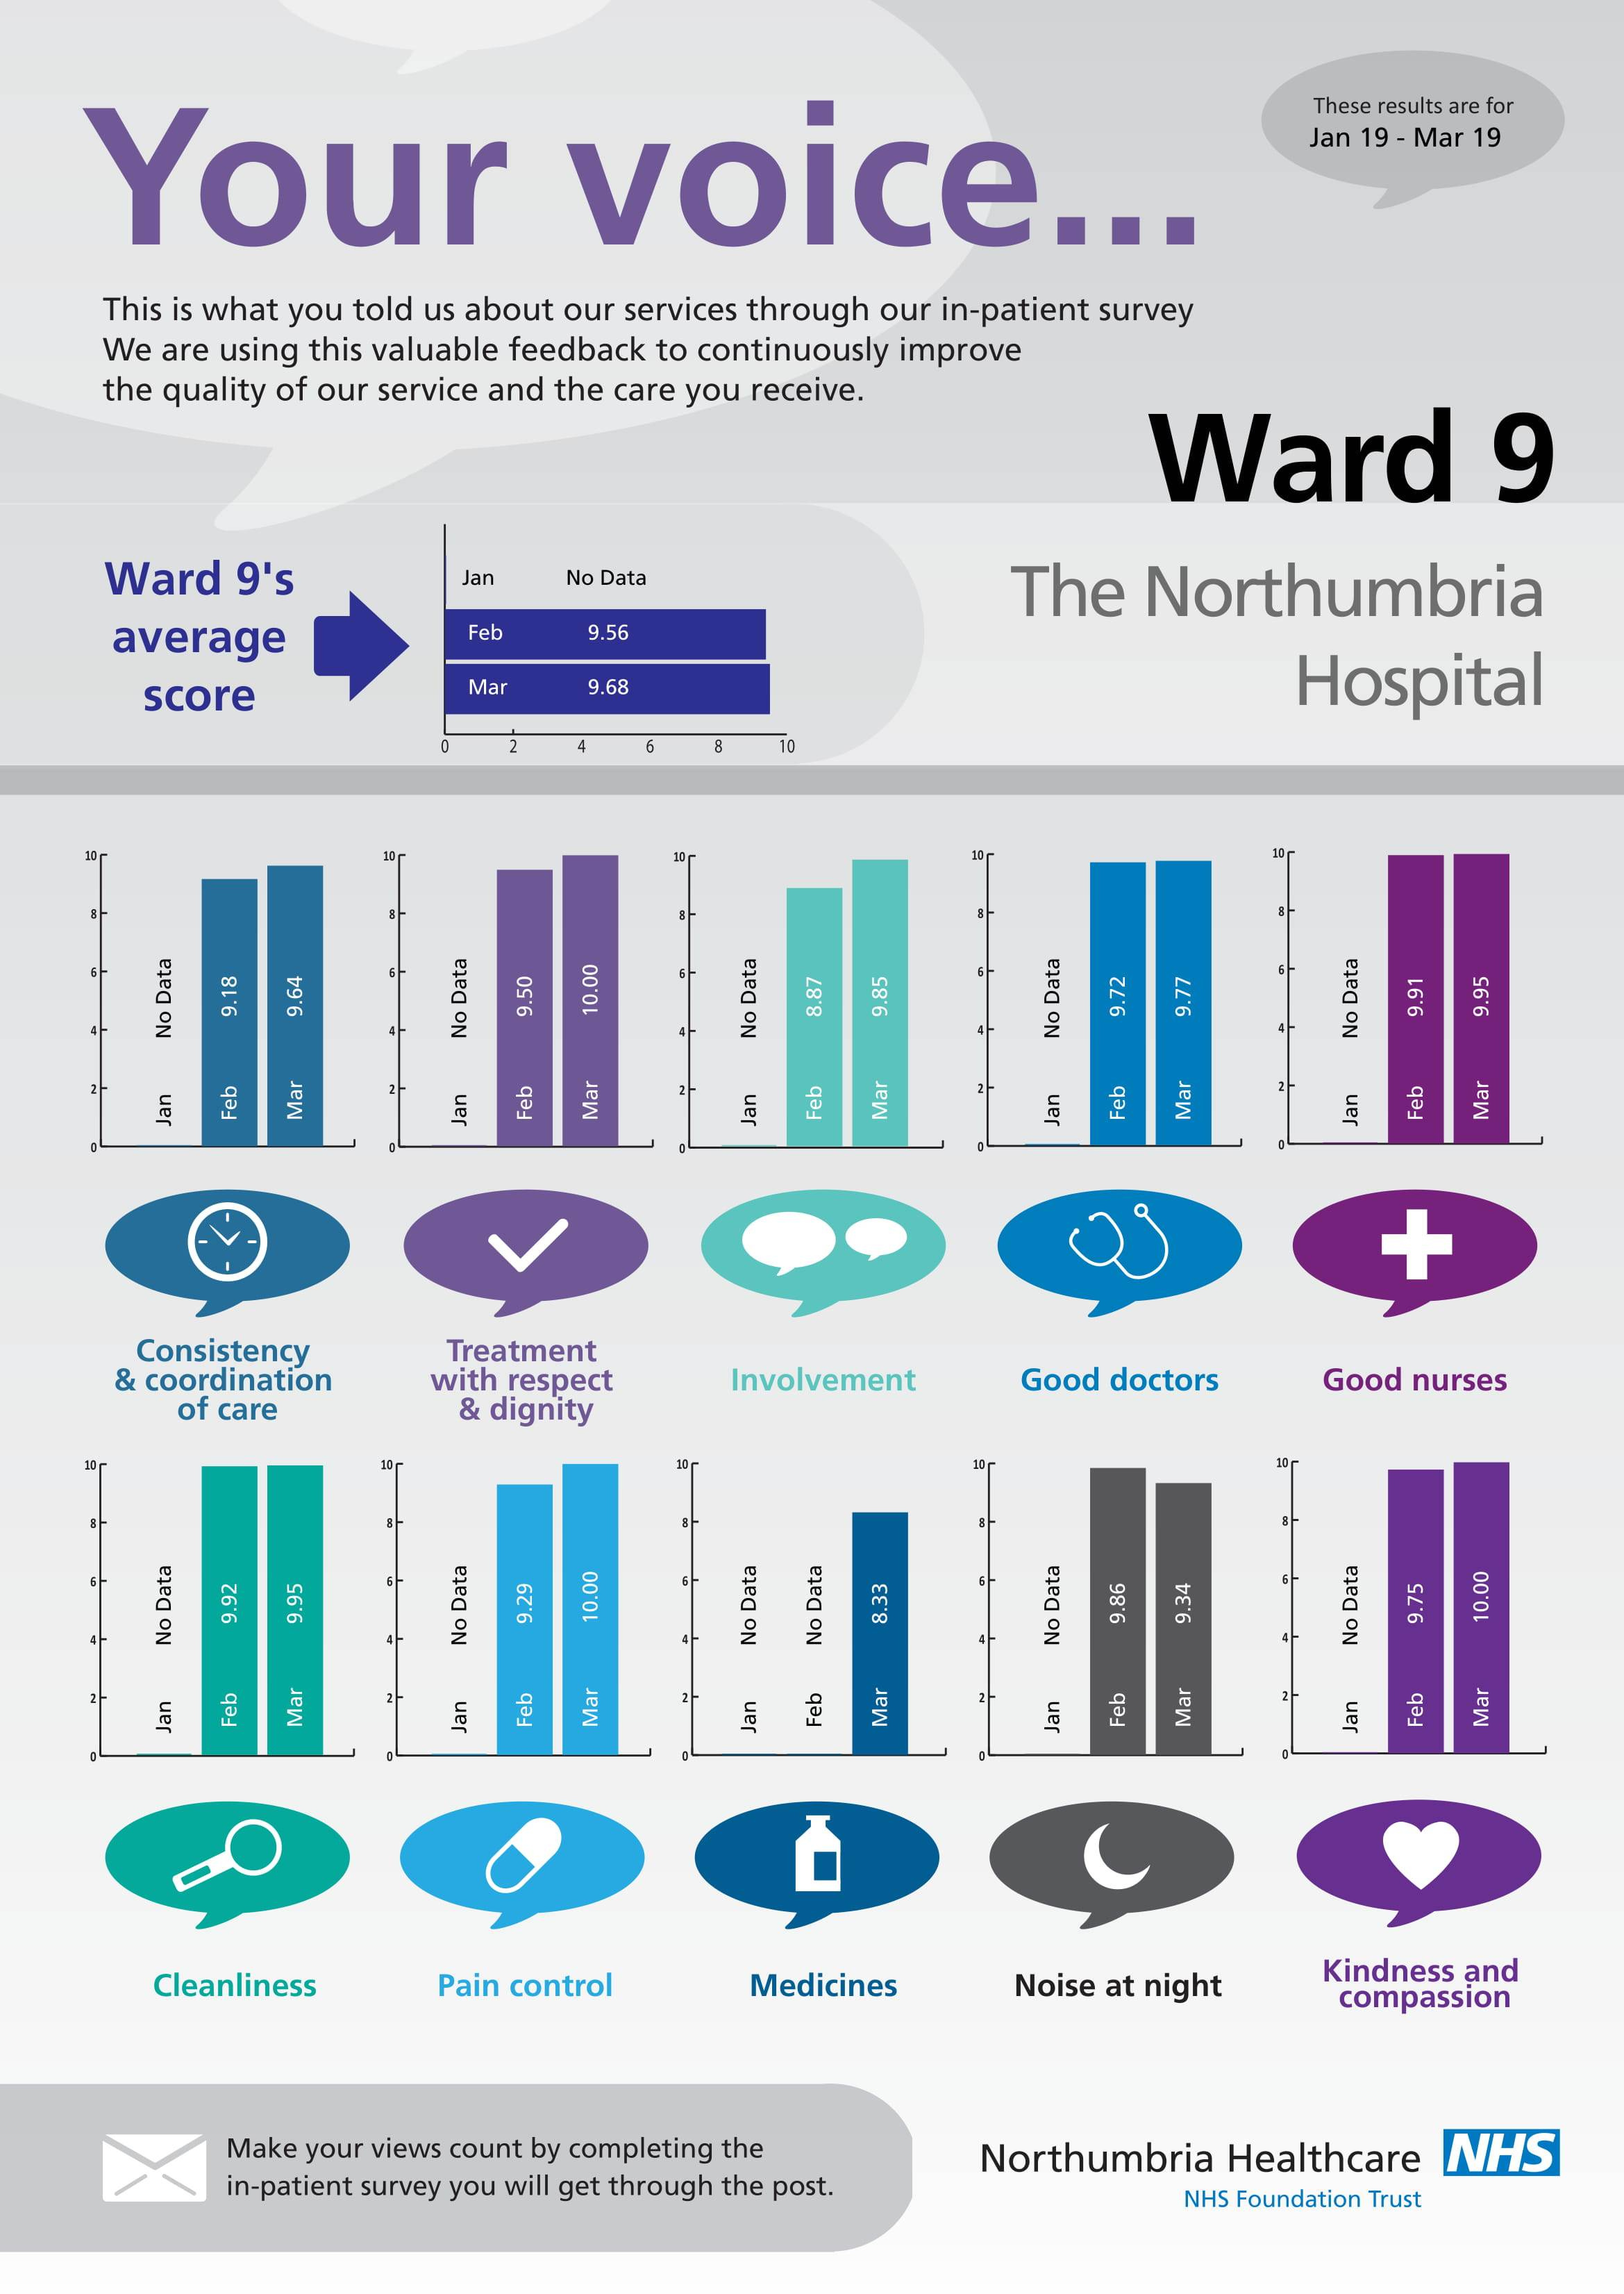 The Northumbria Hospital - Ward 9-1